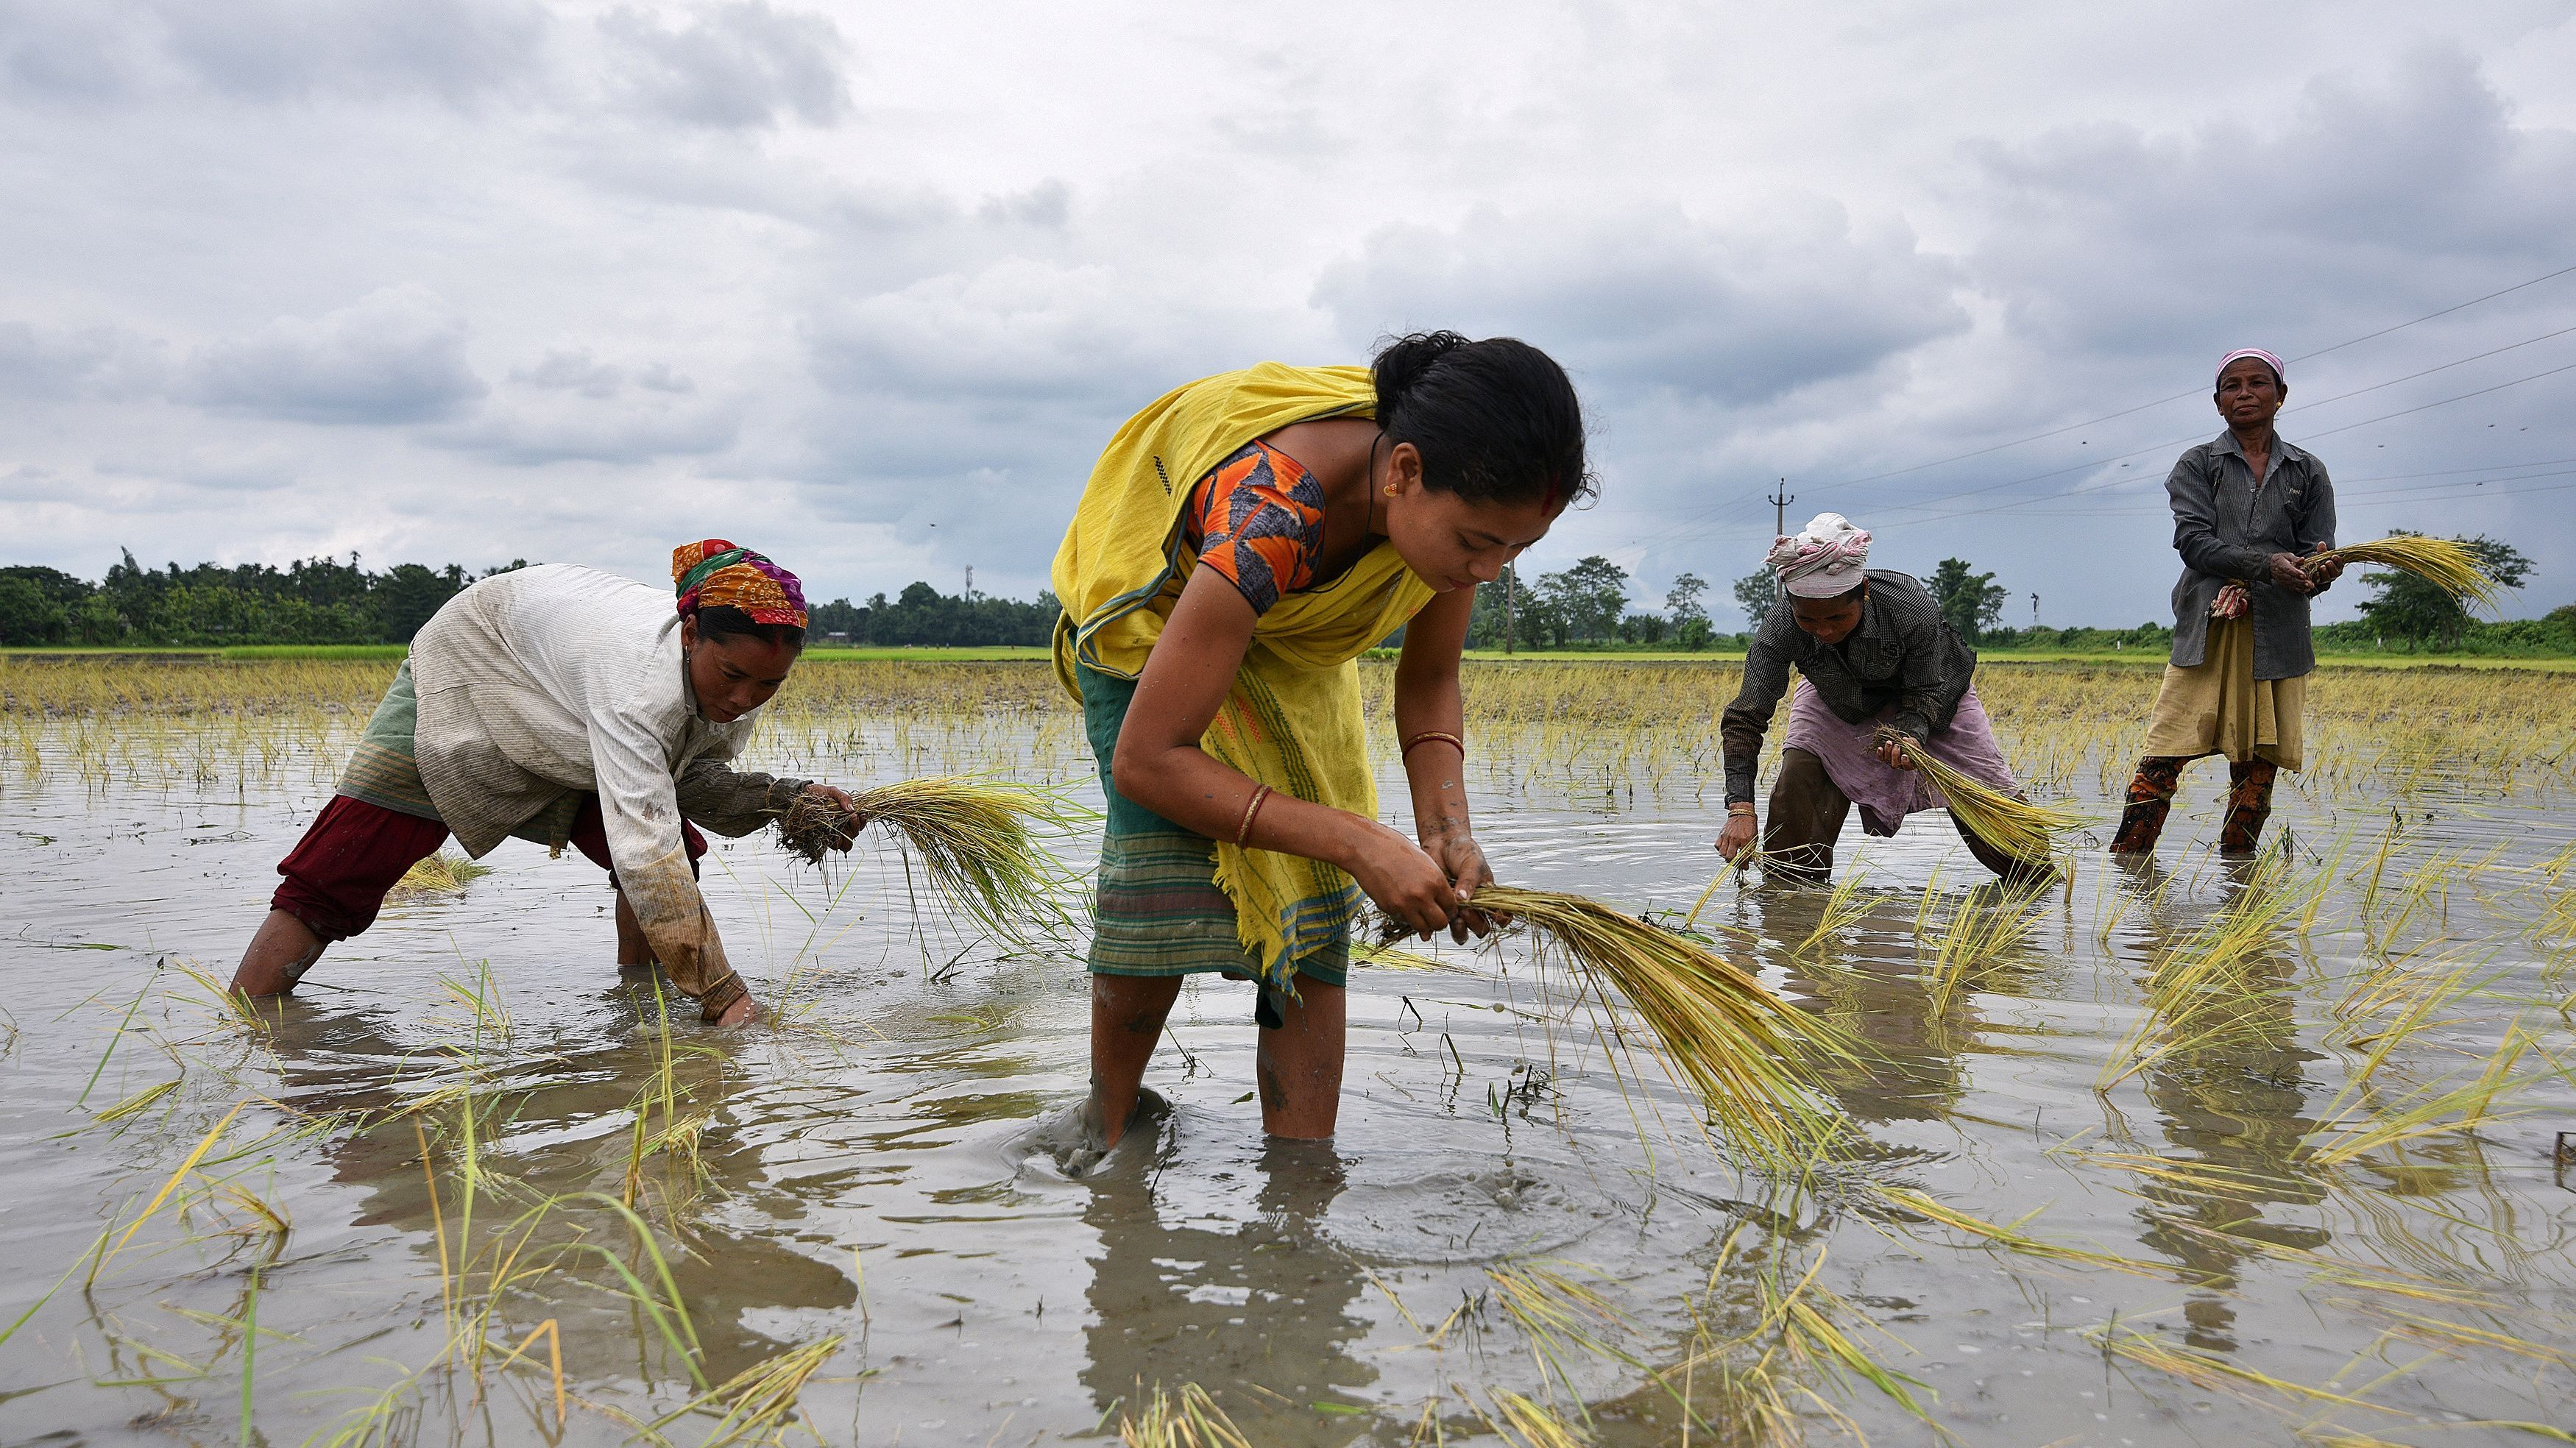 Women plant rice saplings at a paddy field in a village in Nagaon district, in the northeastern state of Assam, India, July 3, 2018. Picture taken July 3, 2018. REUTERS/Anuwar Hazarika - RC19267ACFE0